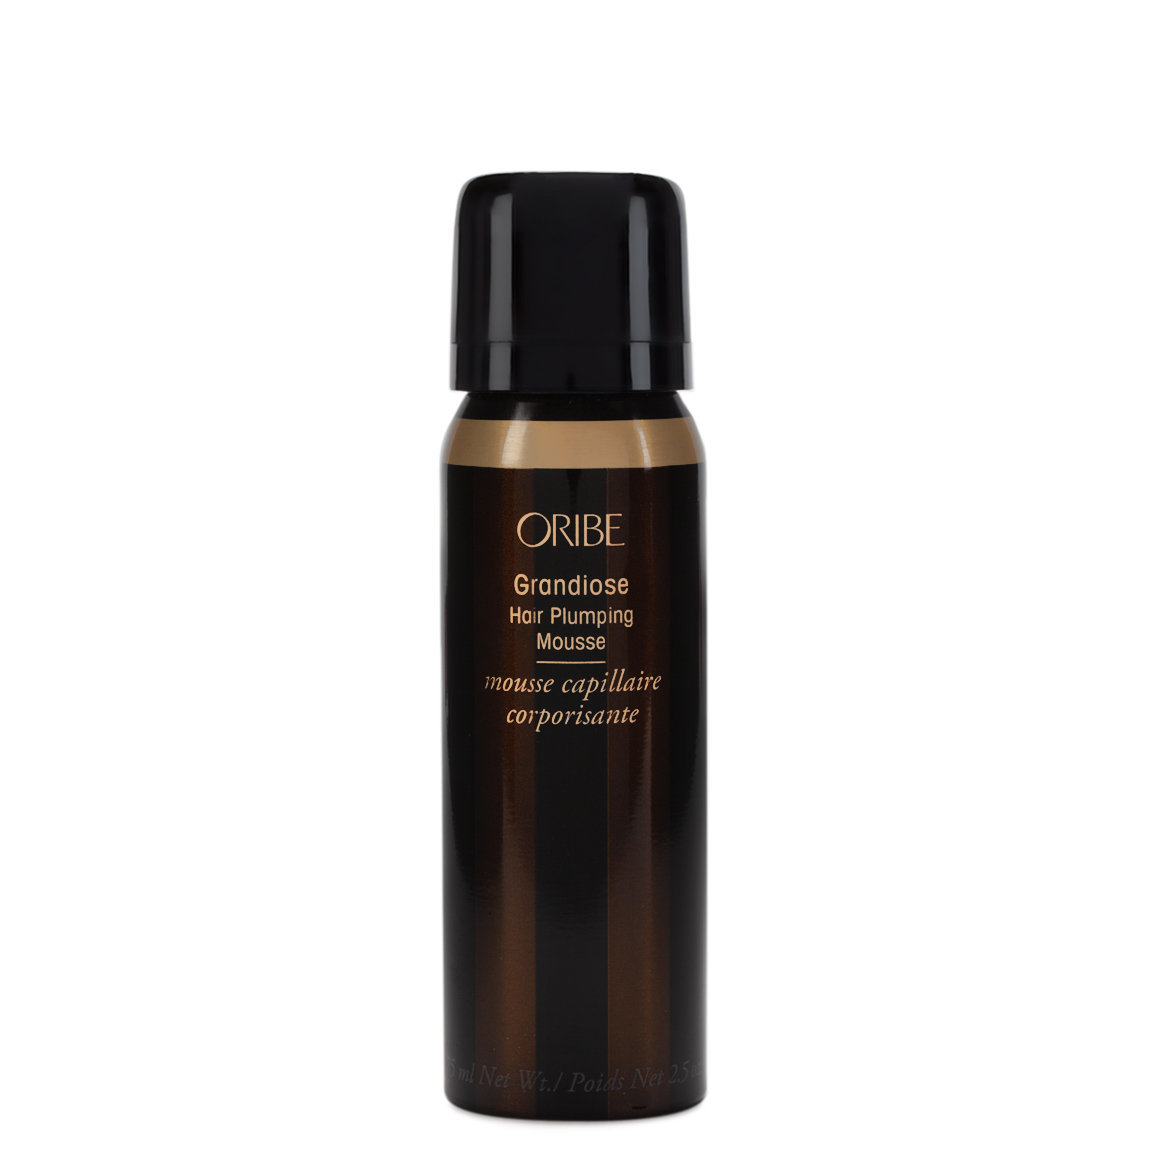 Oribe Grandiose Hair Plumping Mousse 2.5 oz product smear.